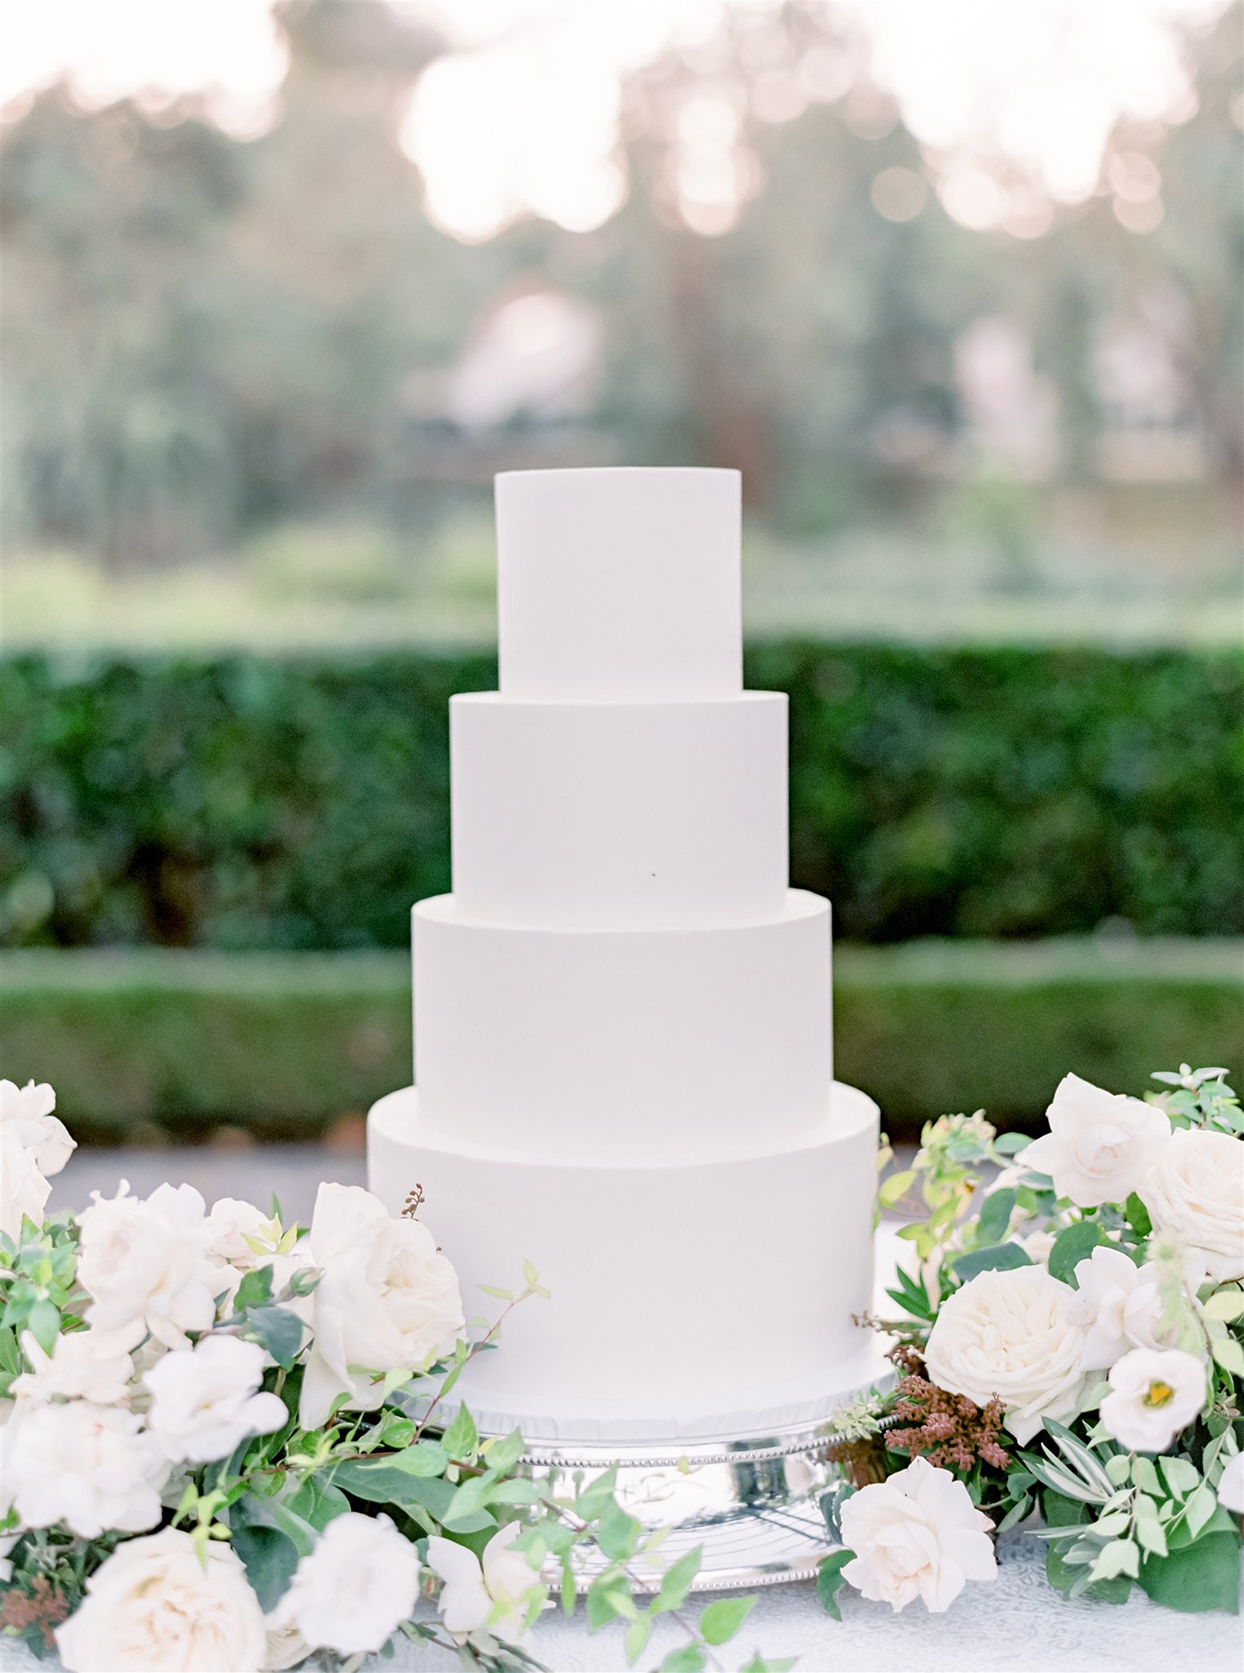 Minimalist white wedding cake on a silver pedestal